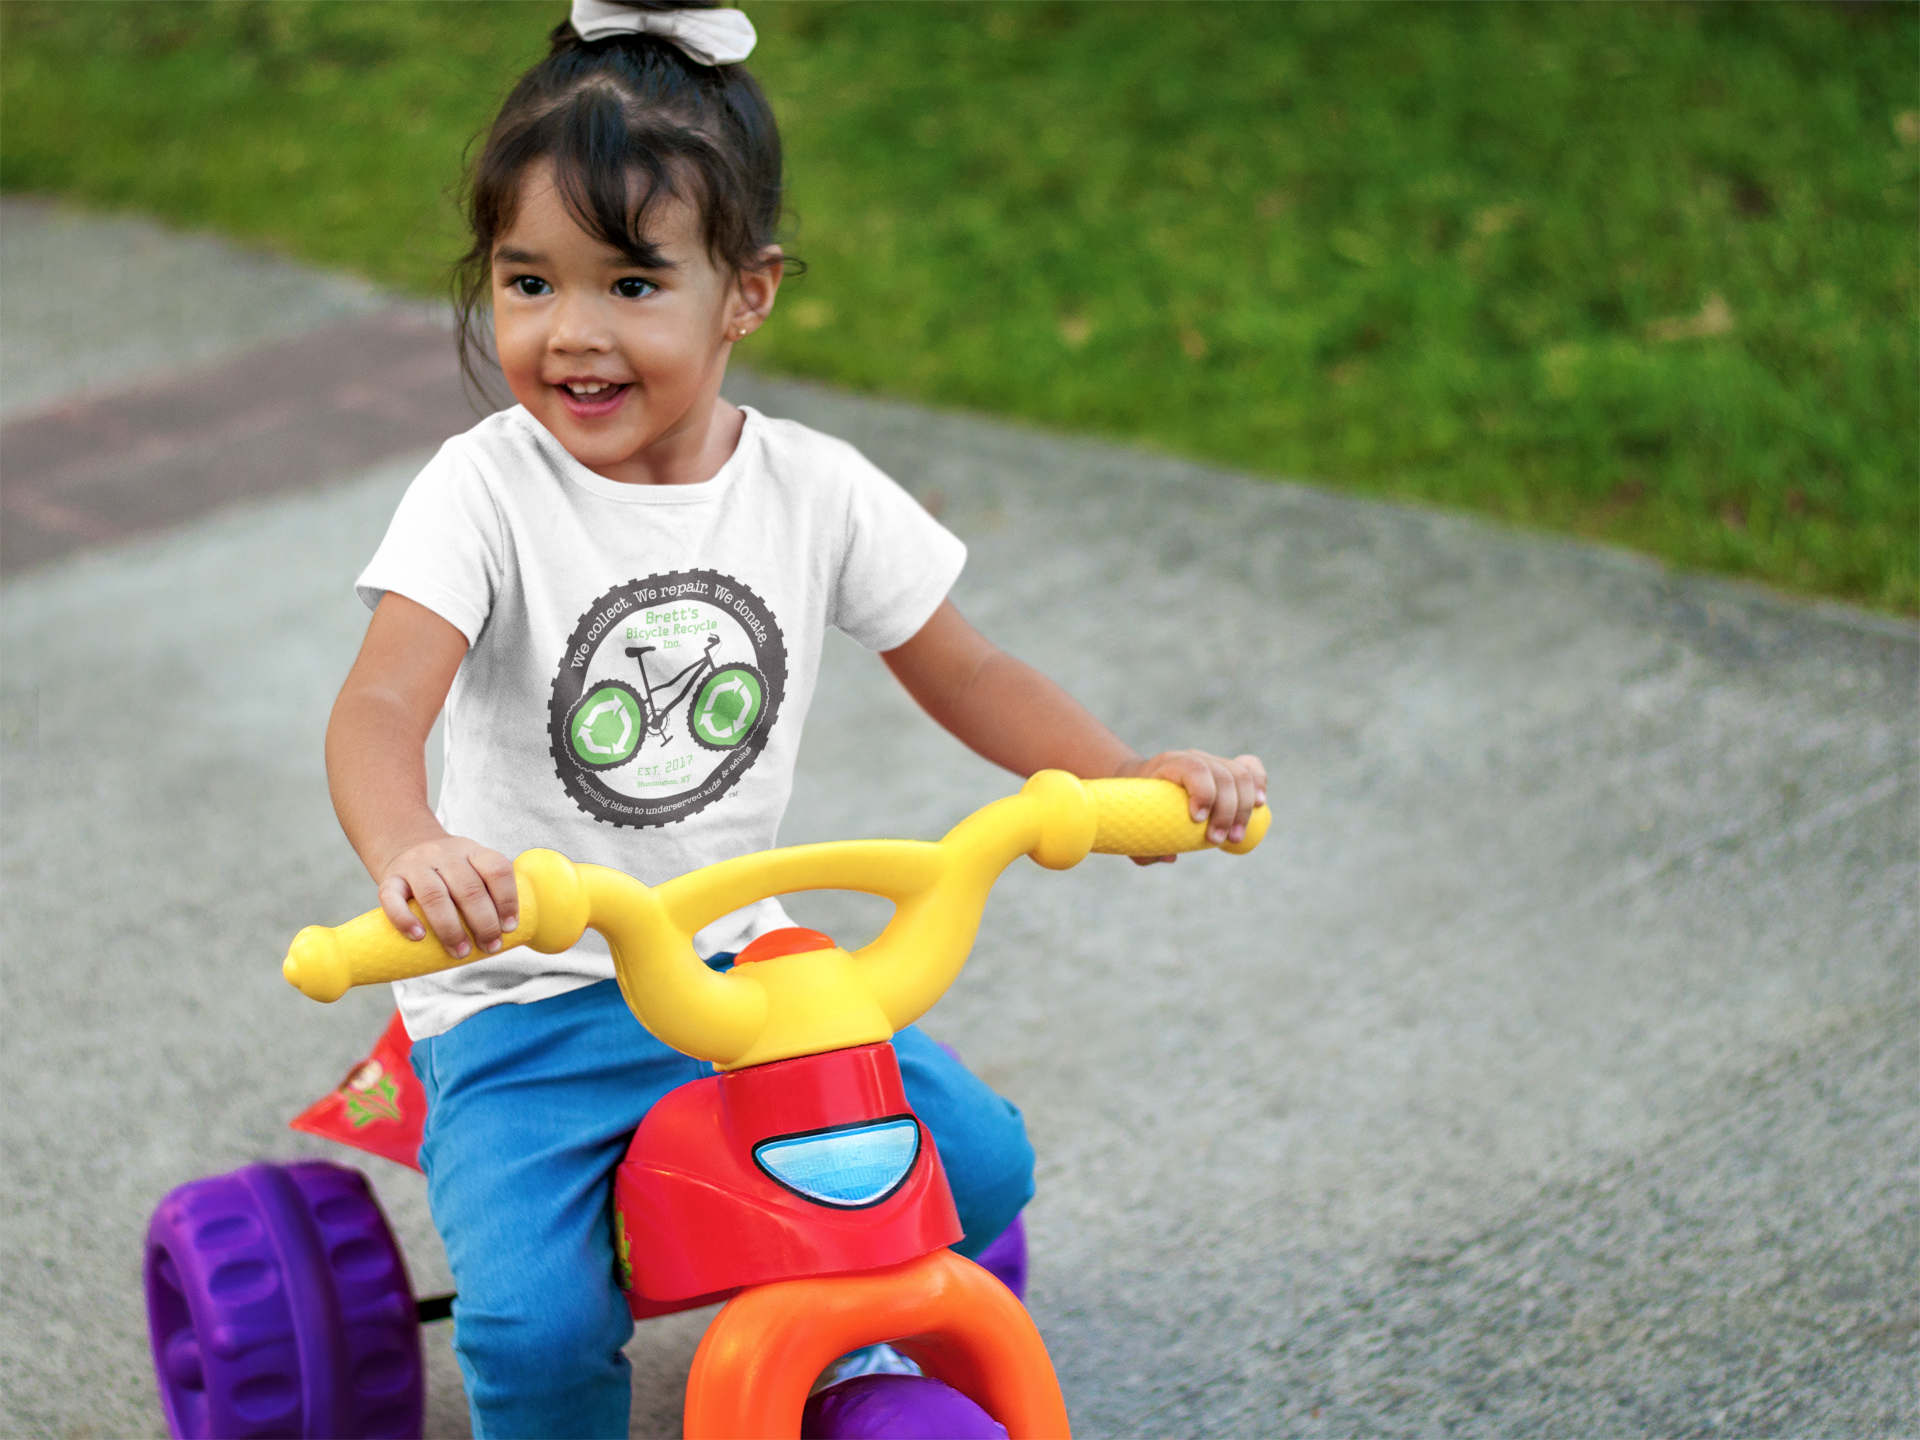 little-girl-riding-a-bicycle-t-shirt-mockup-a7676.png